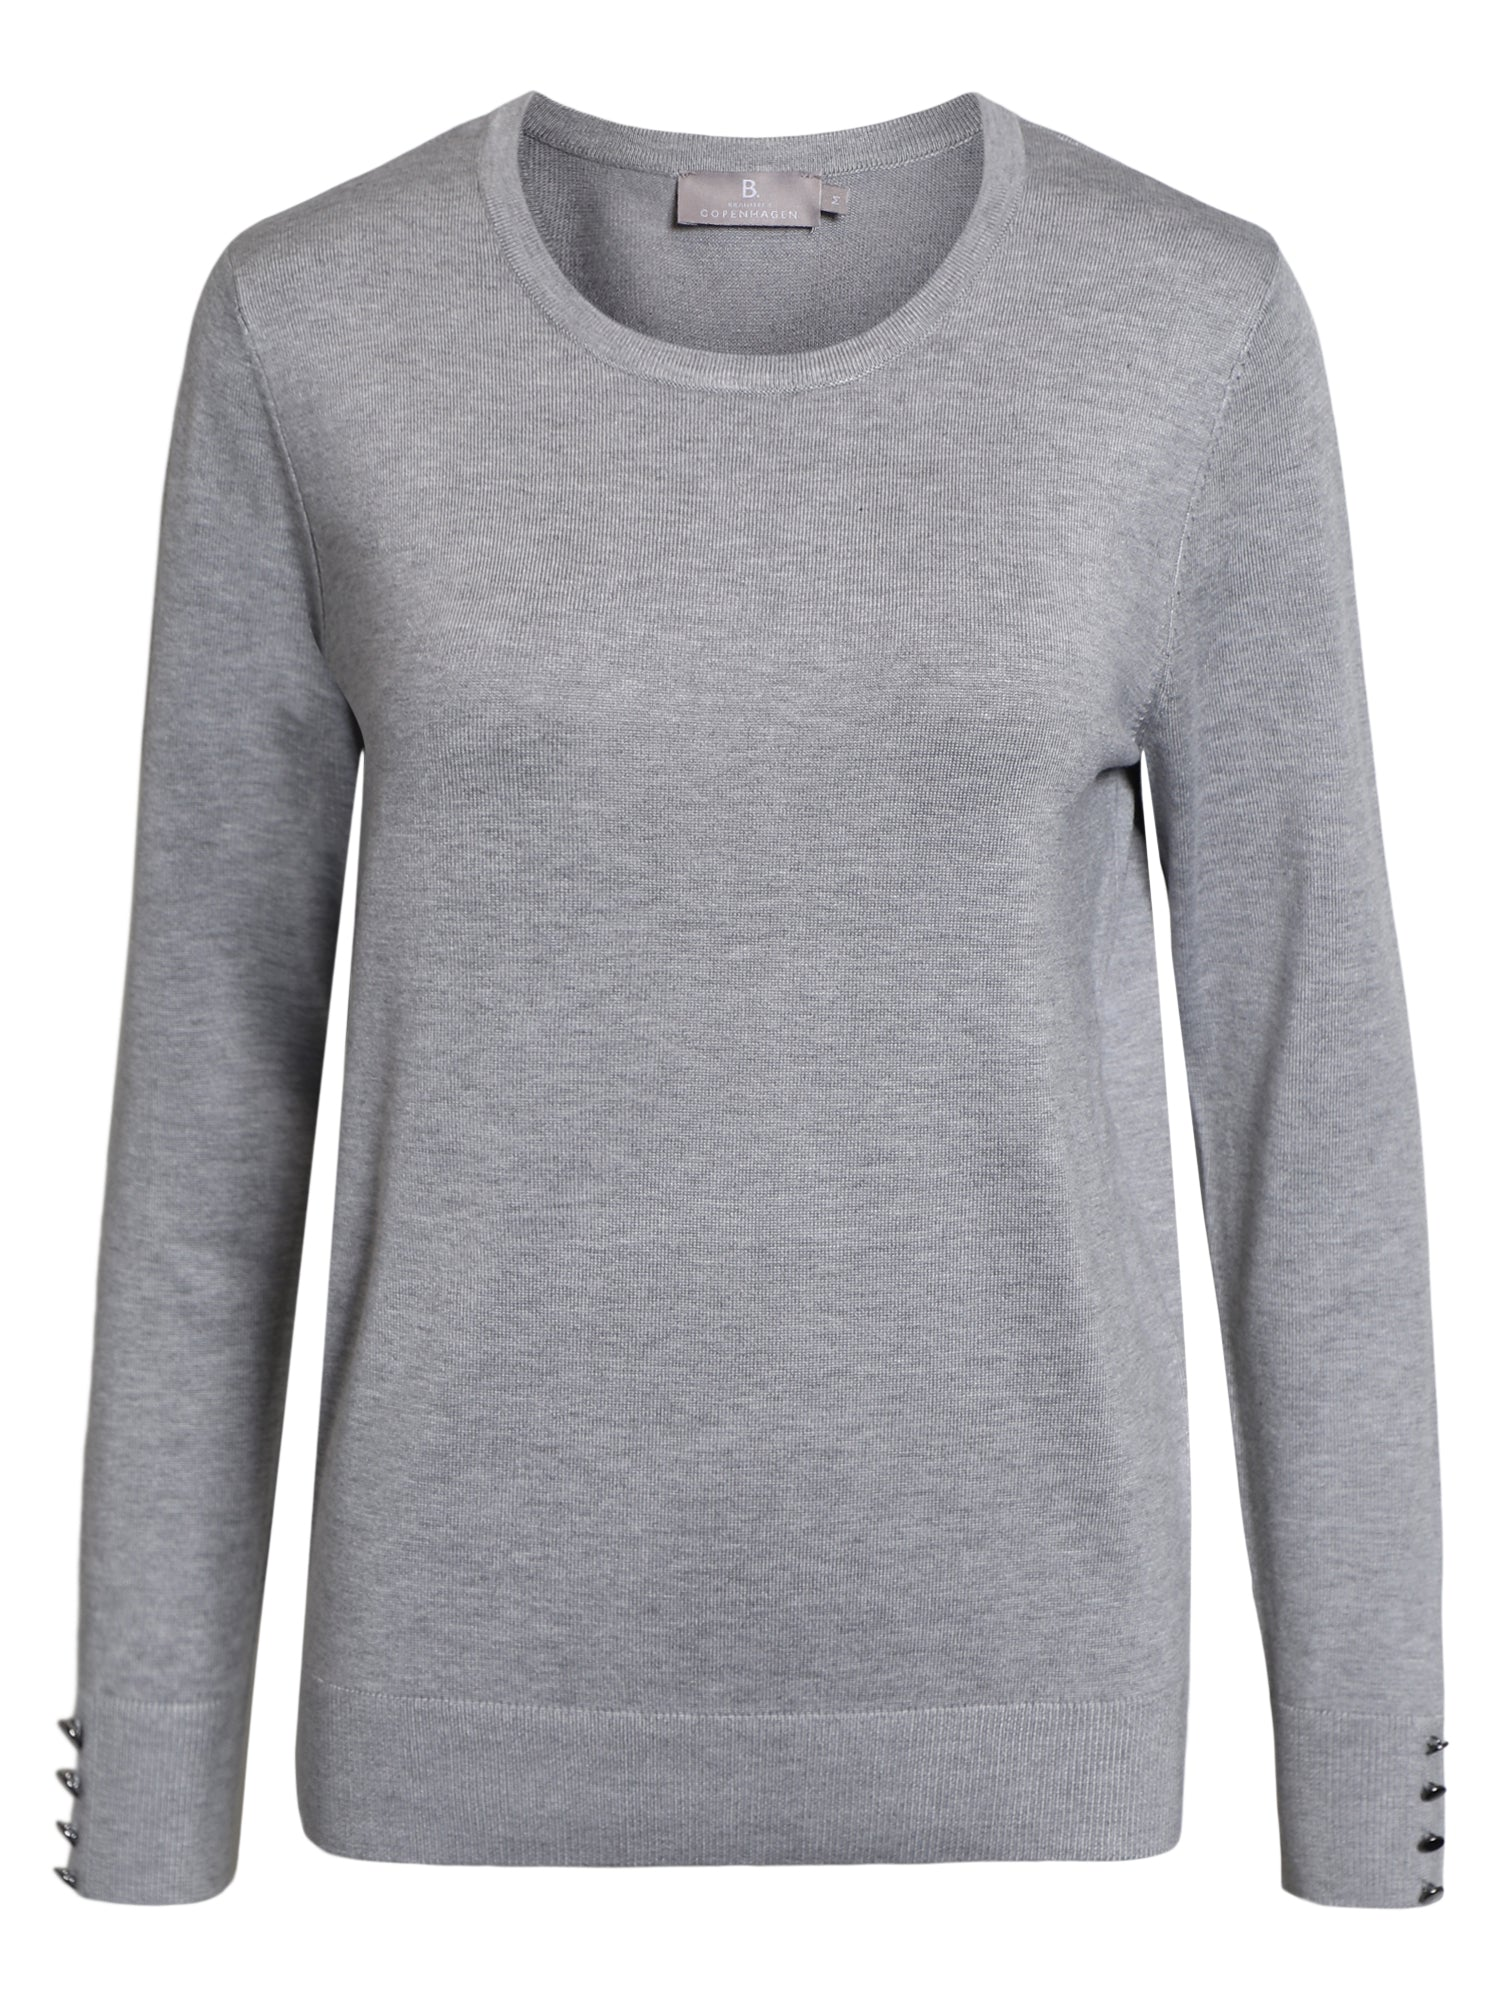 Image of   Pullover med O-hals - Light Grey Melange